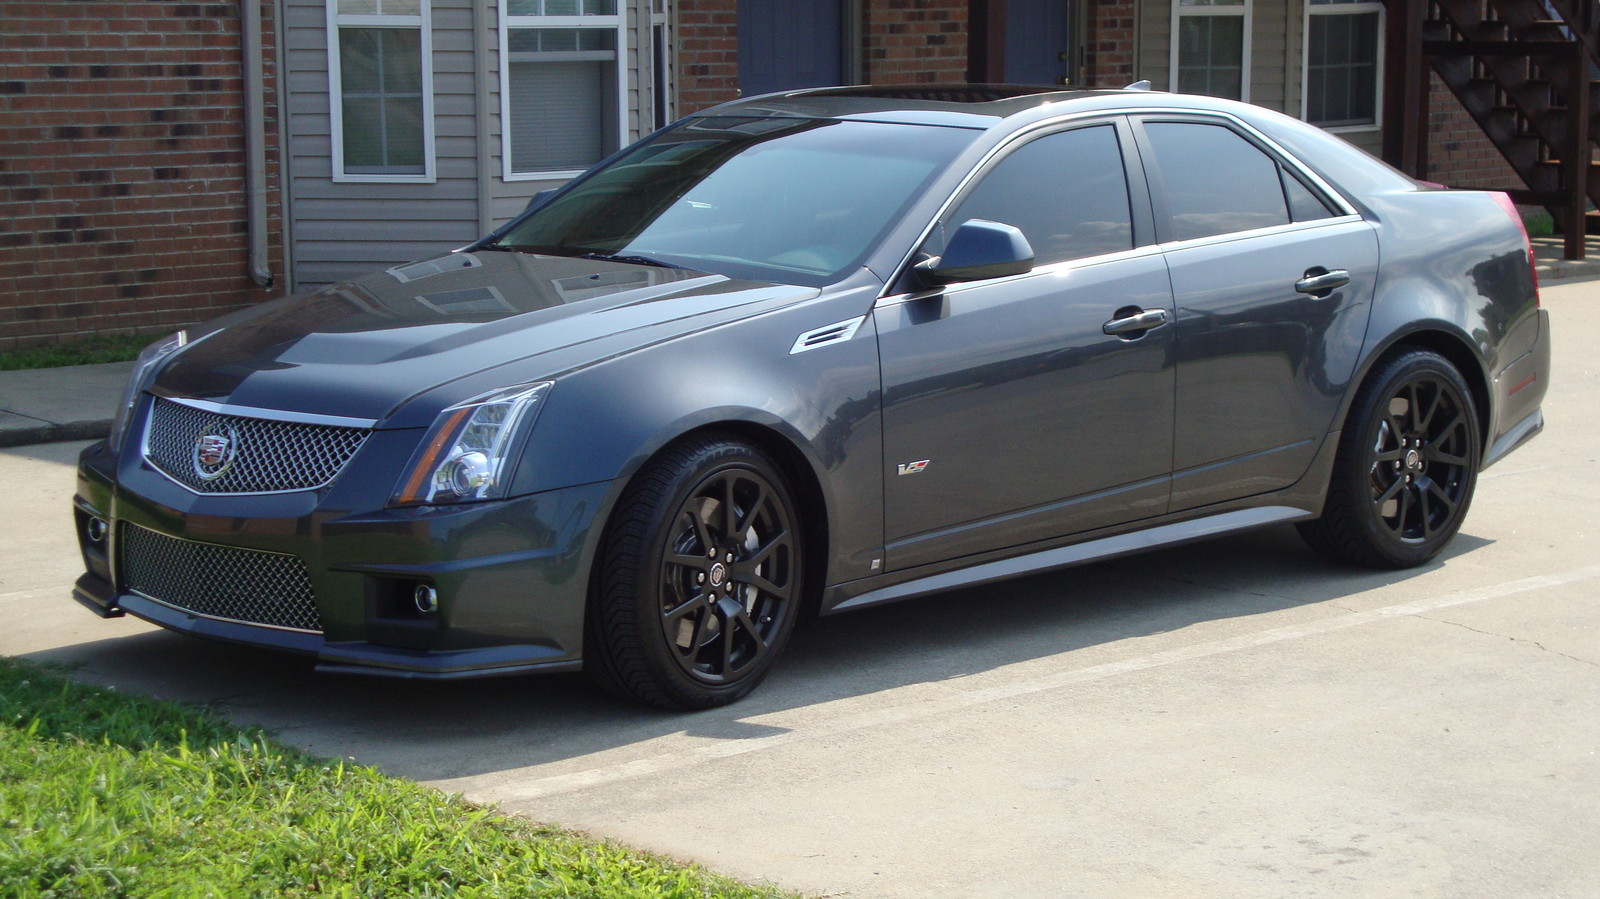 2009 cadillac cts v 1 4 mile drag racing timeslip specs 0. Black Bedroom Furniture Sets. Home Design Ideas